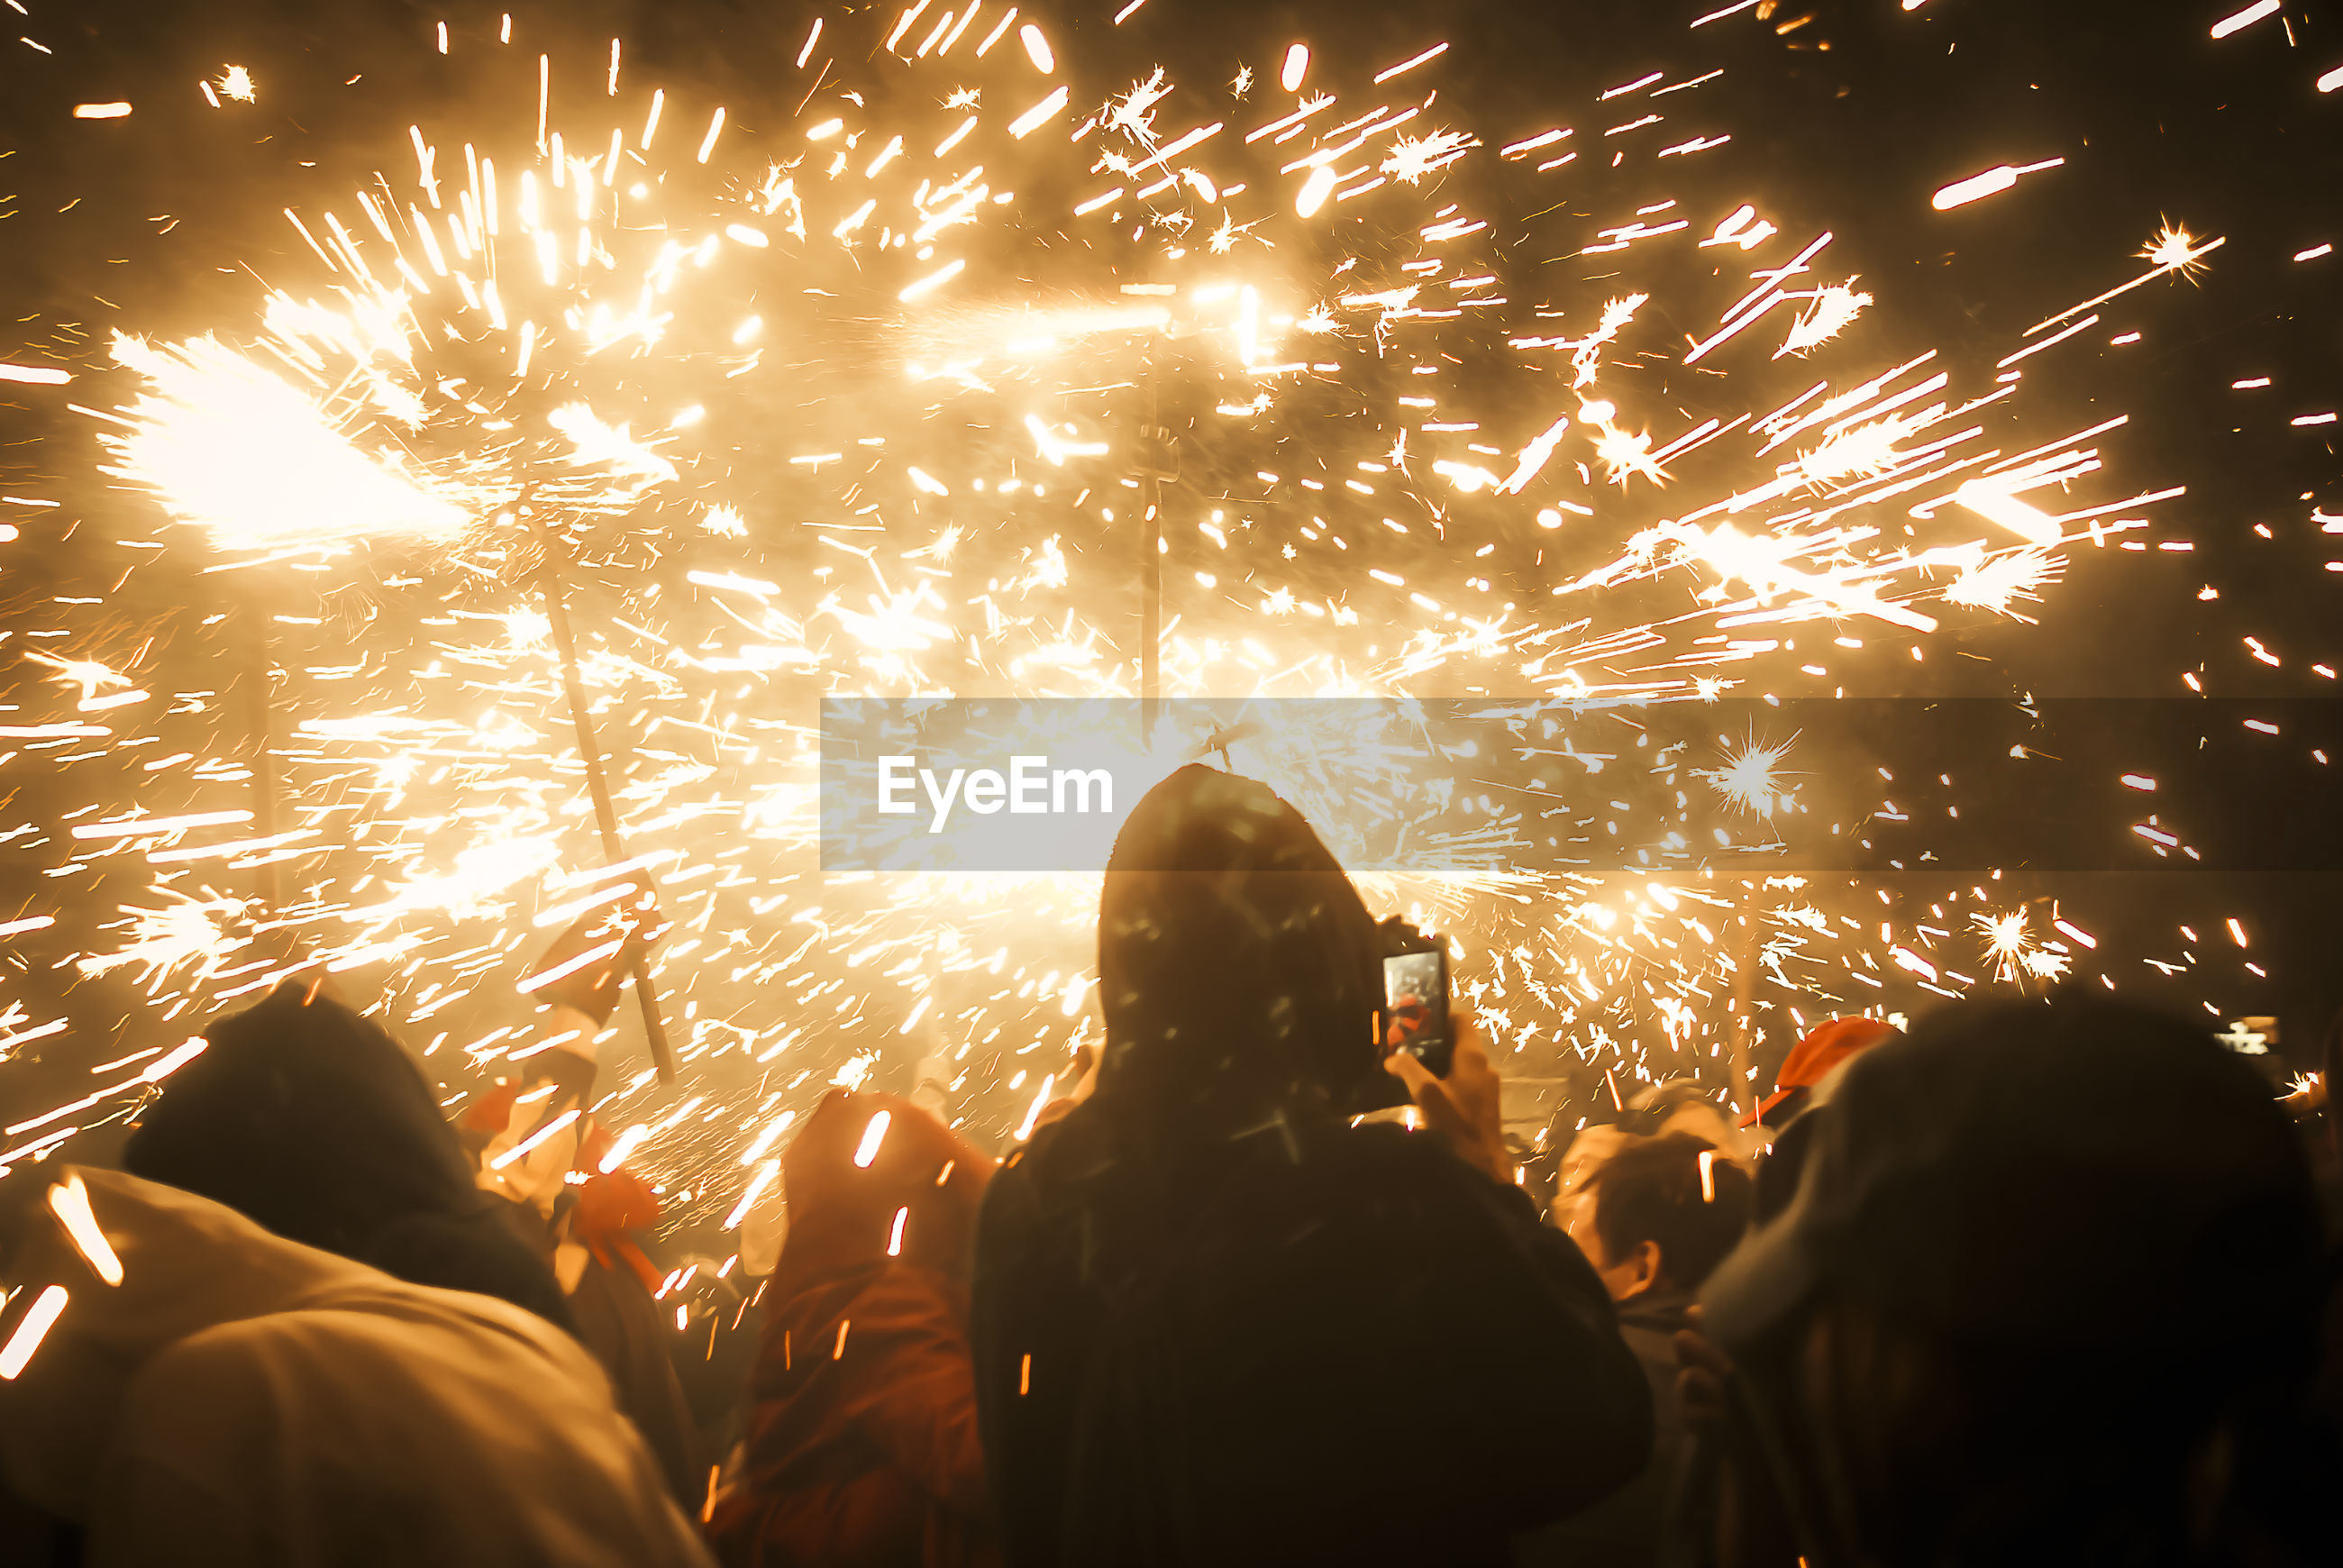 Rear view of people looking at fireworks display against sky at night